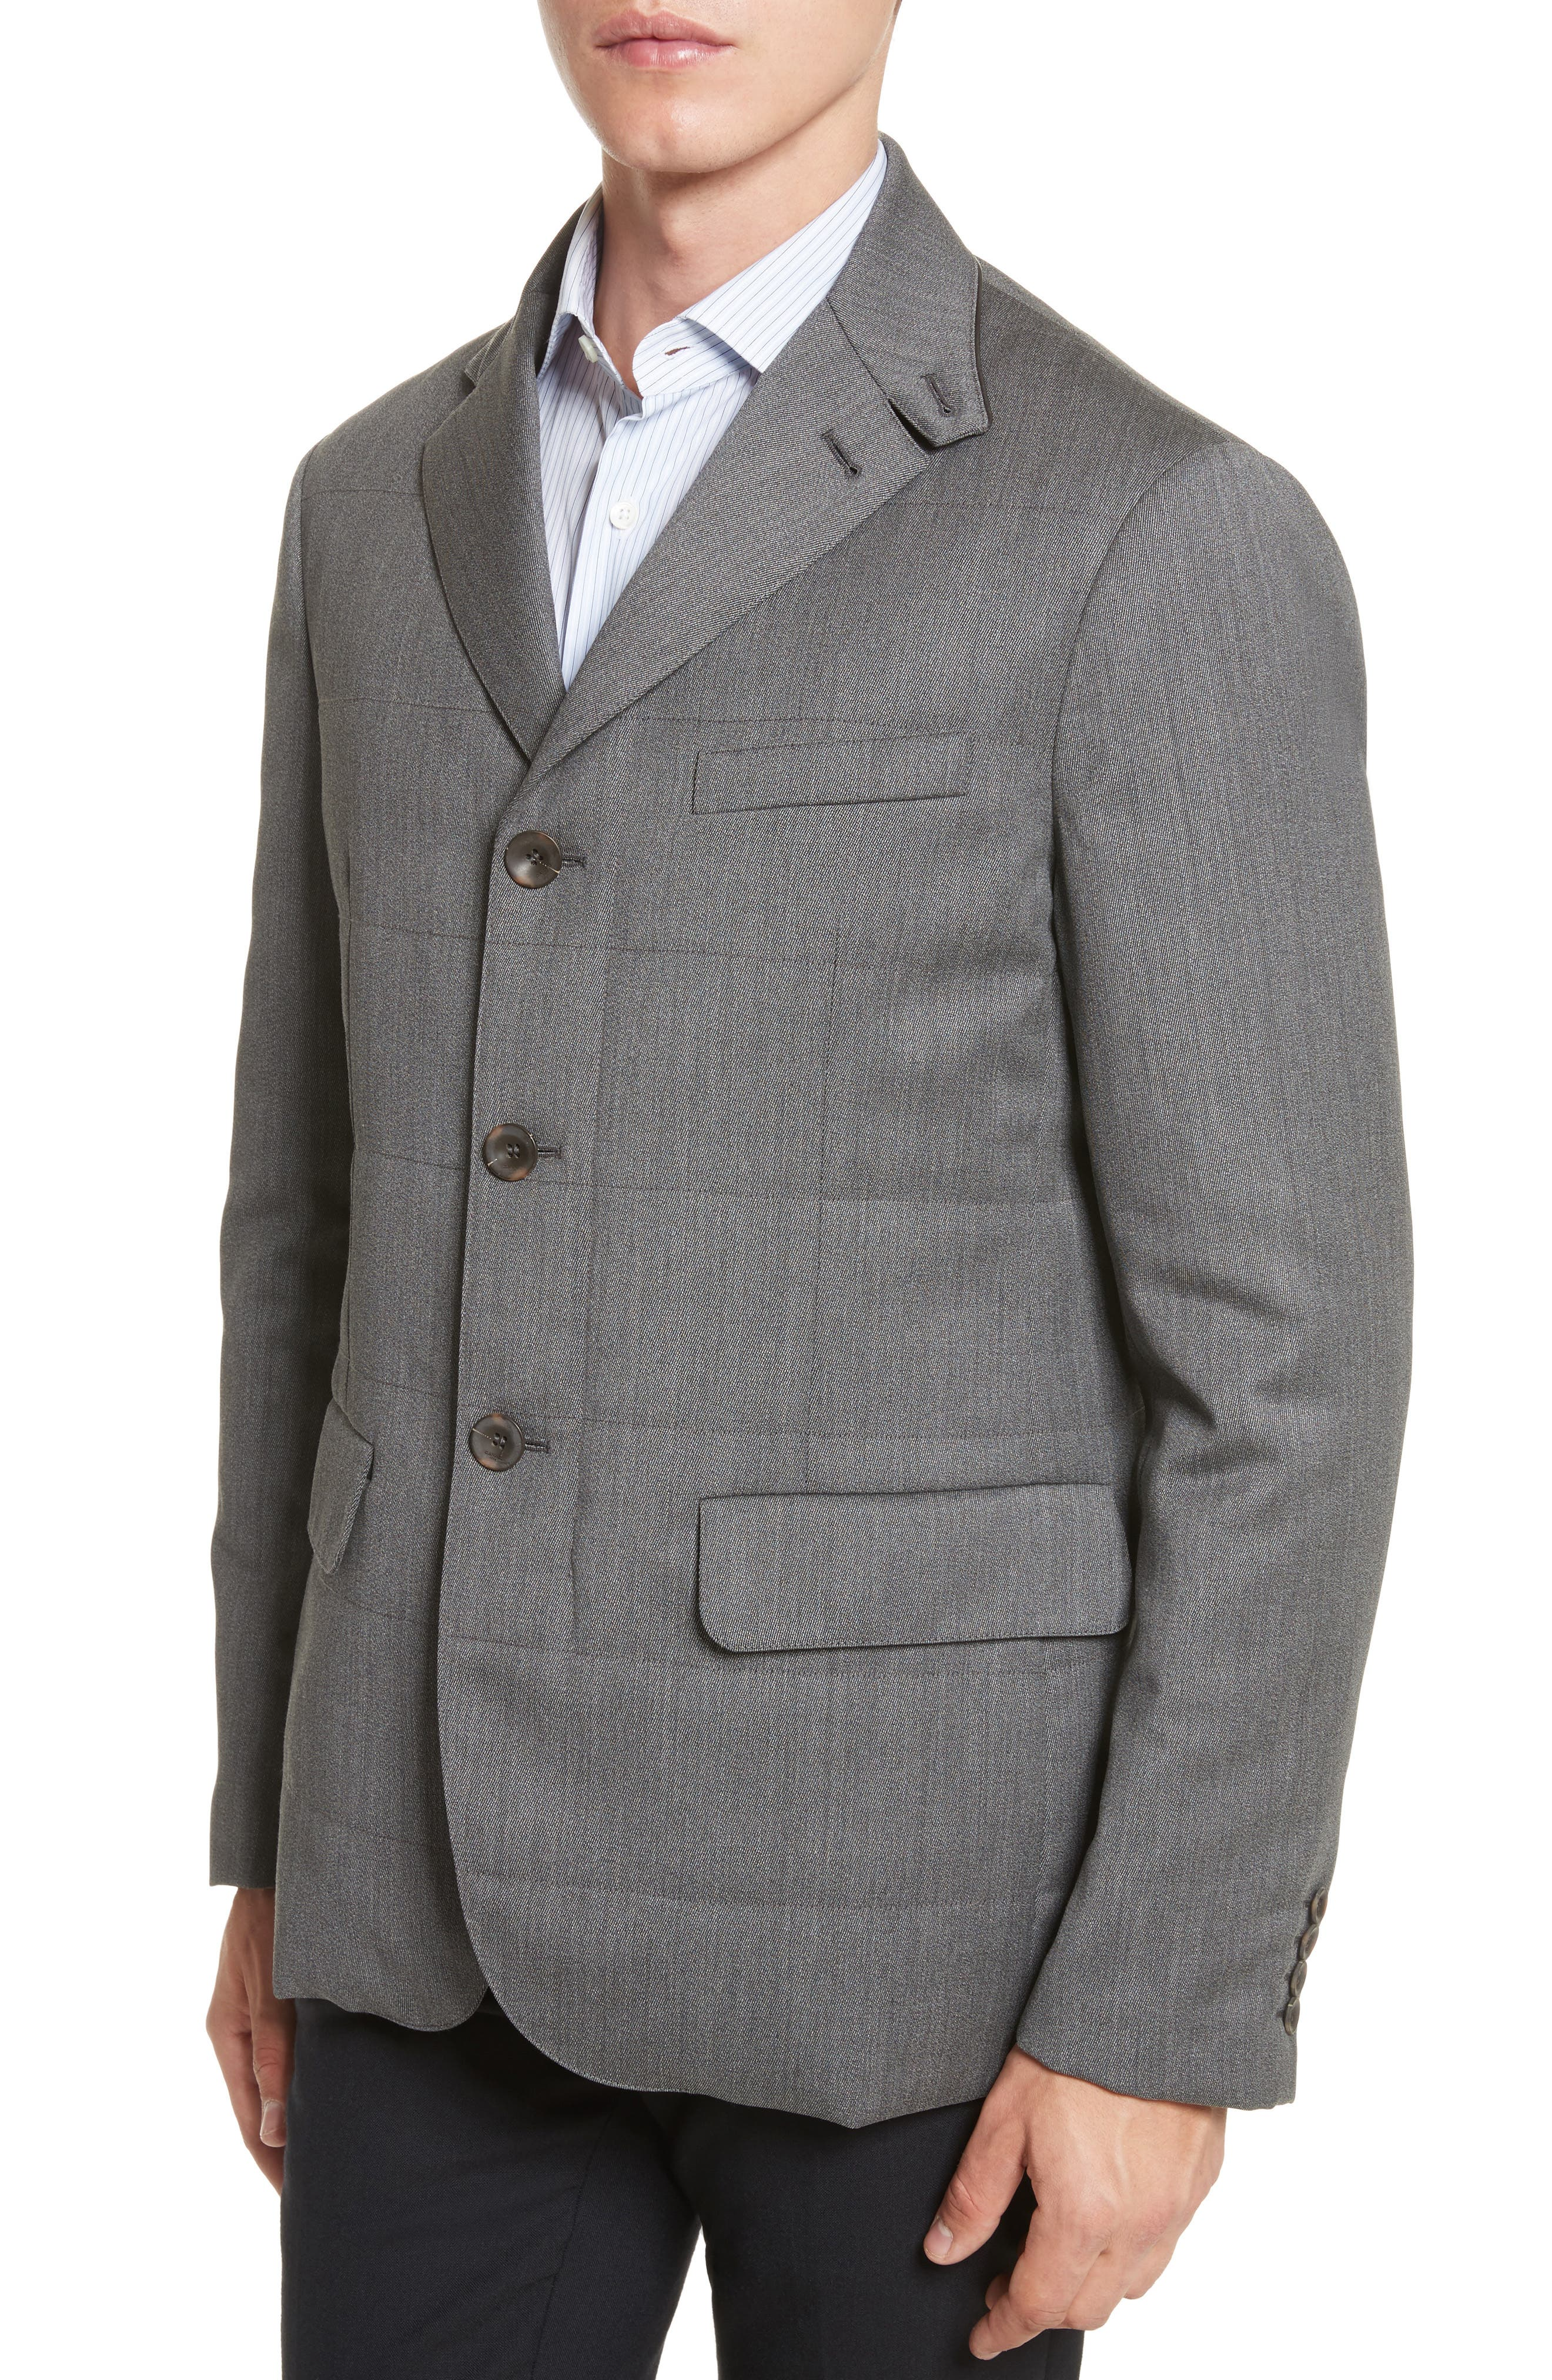 Water-Resistant Wool Jacket with Bib,                             Alternate thumbnail 4, color,                             050